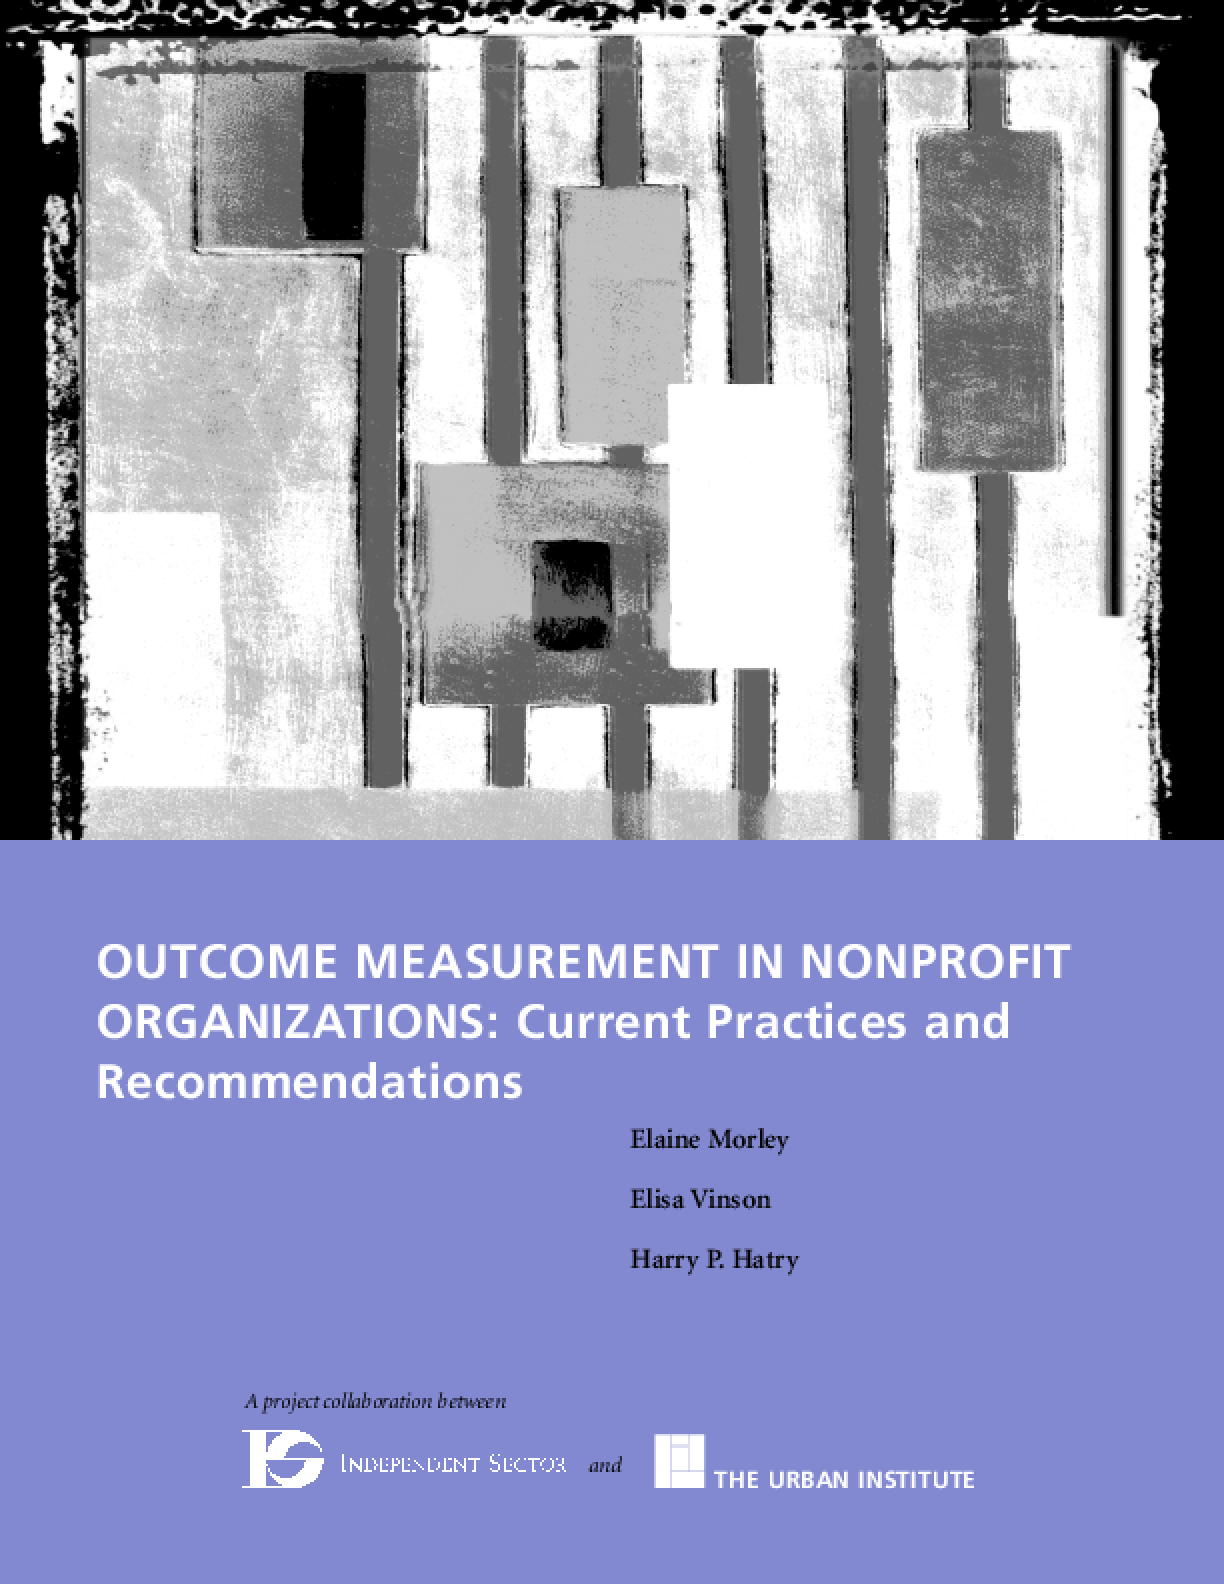 Outcome Measurement in Nonprofit Organizations: Current Practices and Recommendations